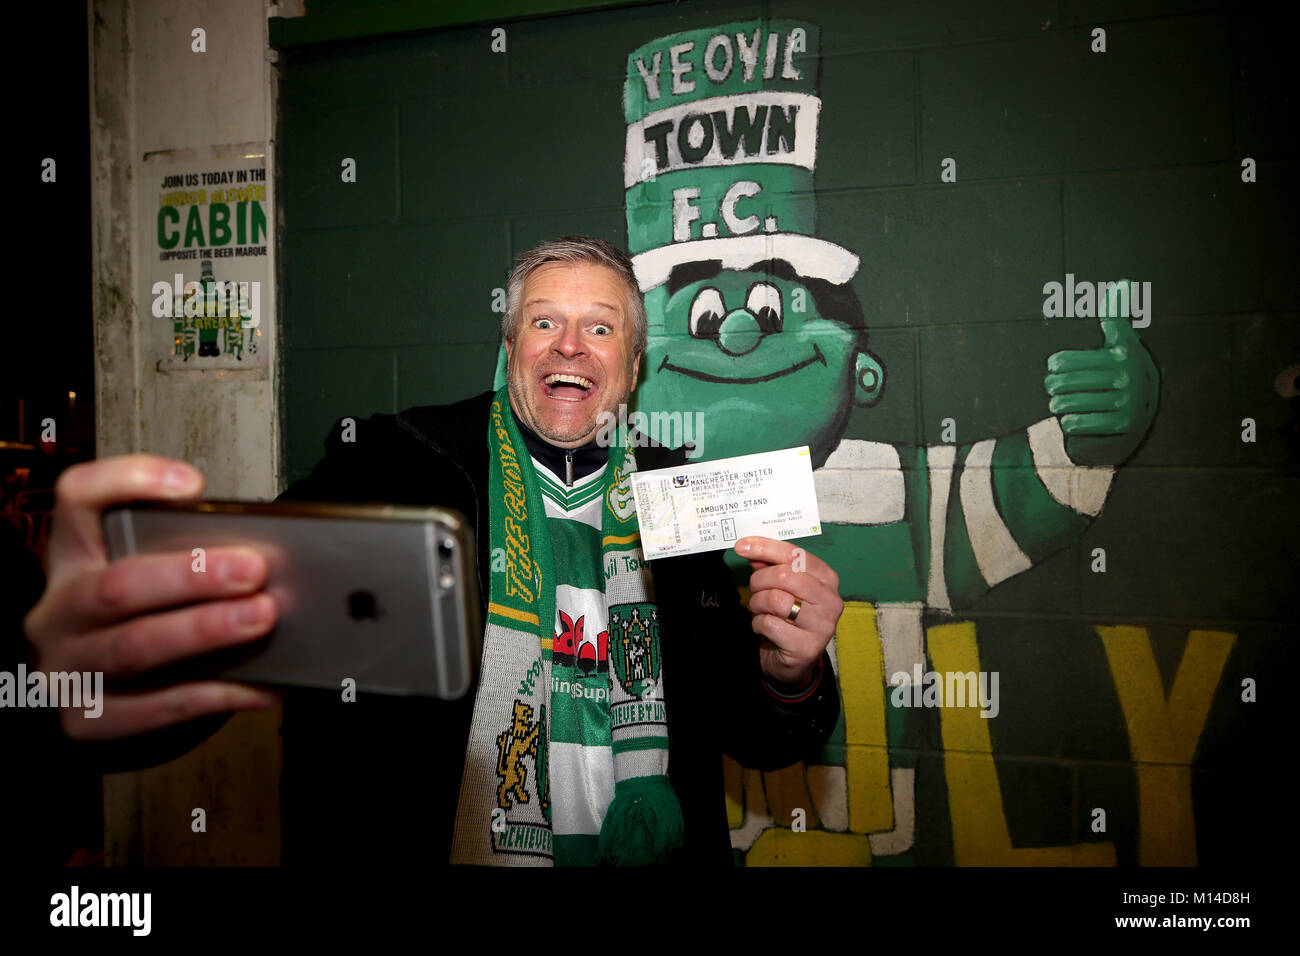 A Yeovil Town fan poses for a selfie with his ticket and the club mascot Jolly Green Giant in the background during - Stock Image